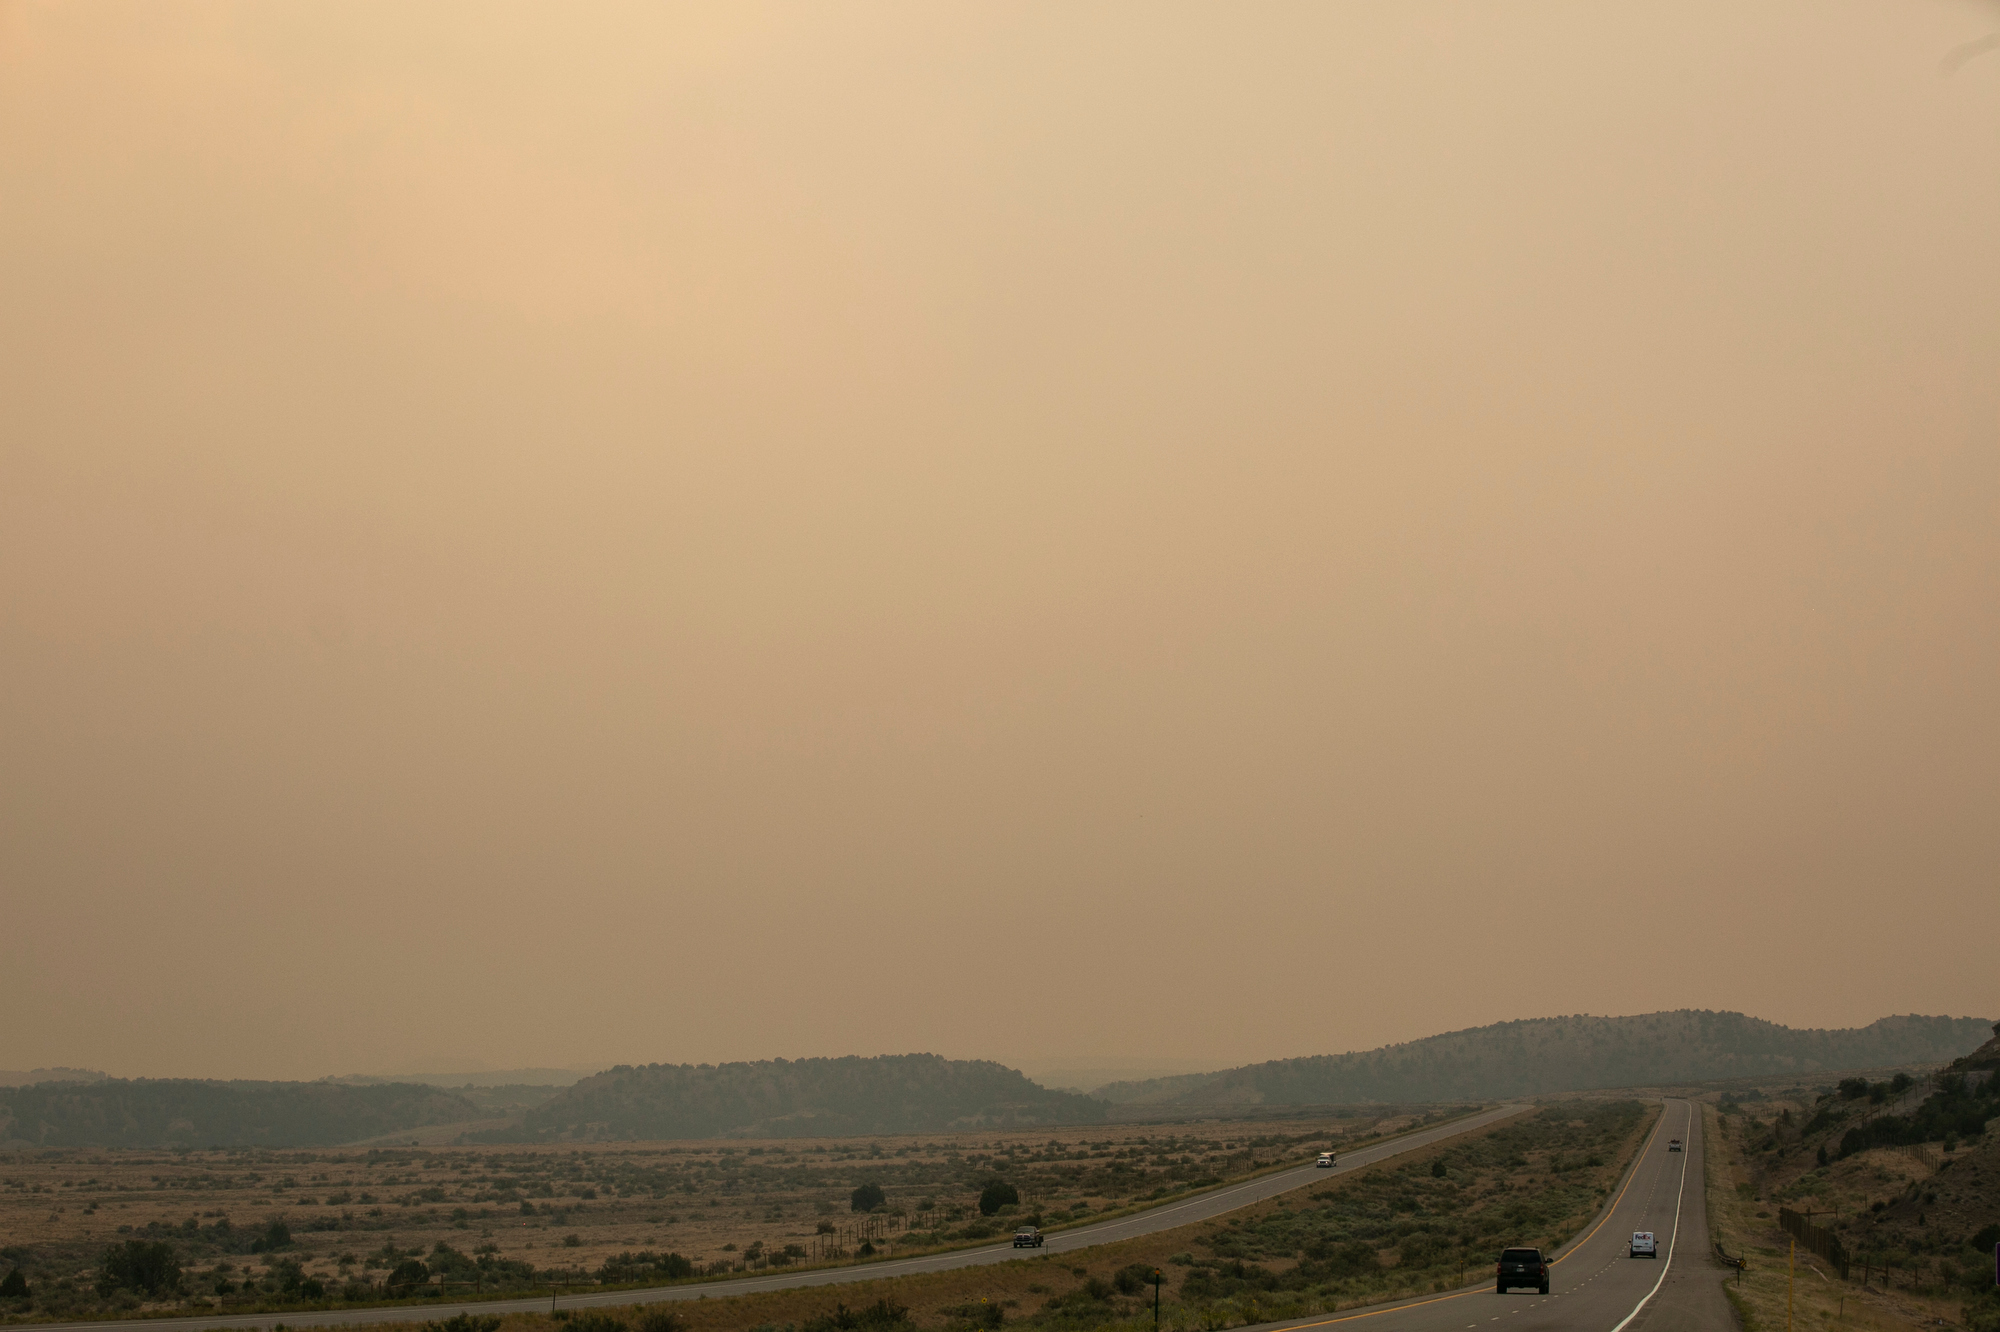 GRAND JUNCTION PINE GULCH FIRE SMOKE AIR POLLUTION